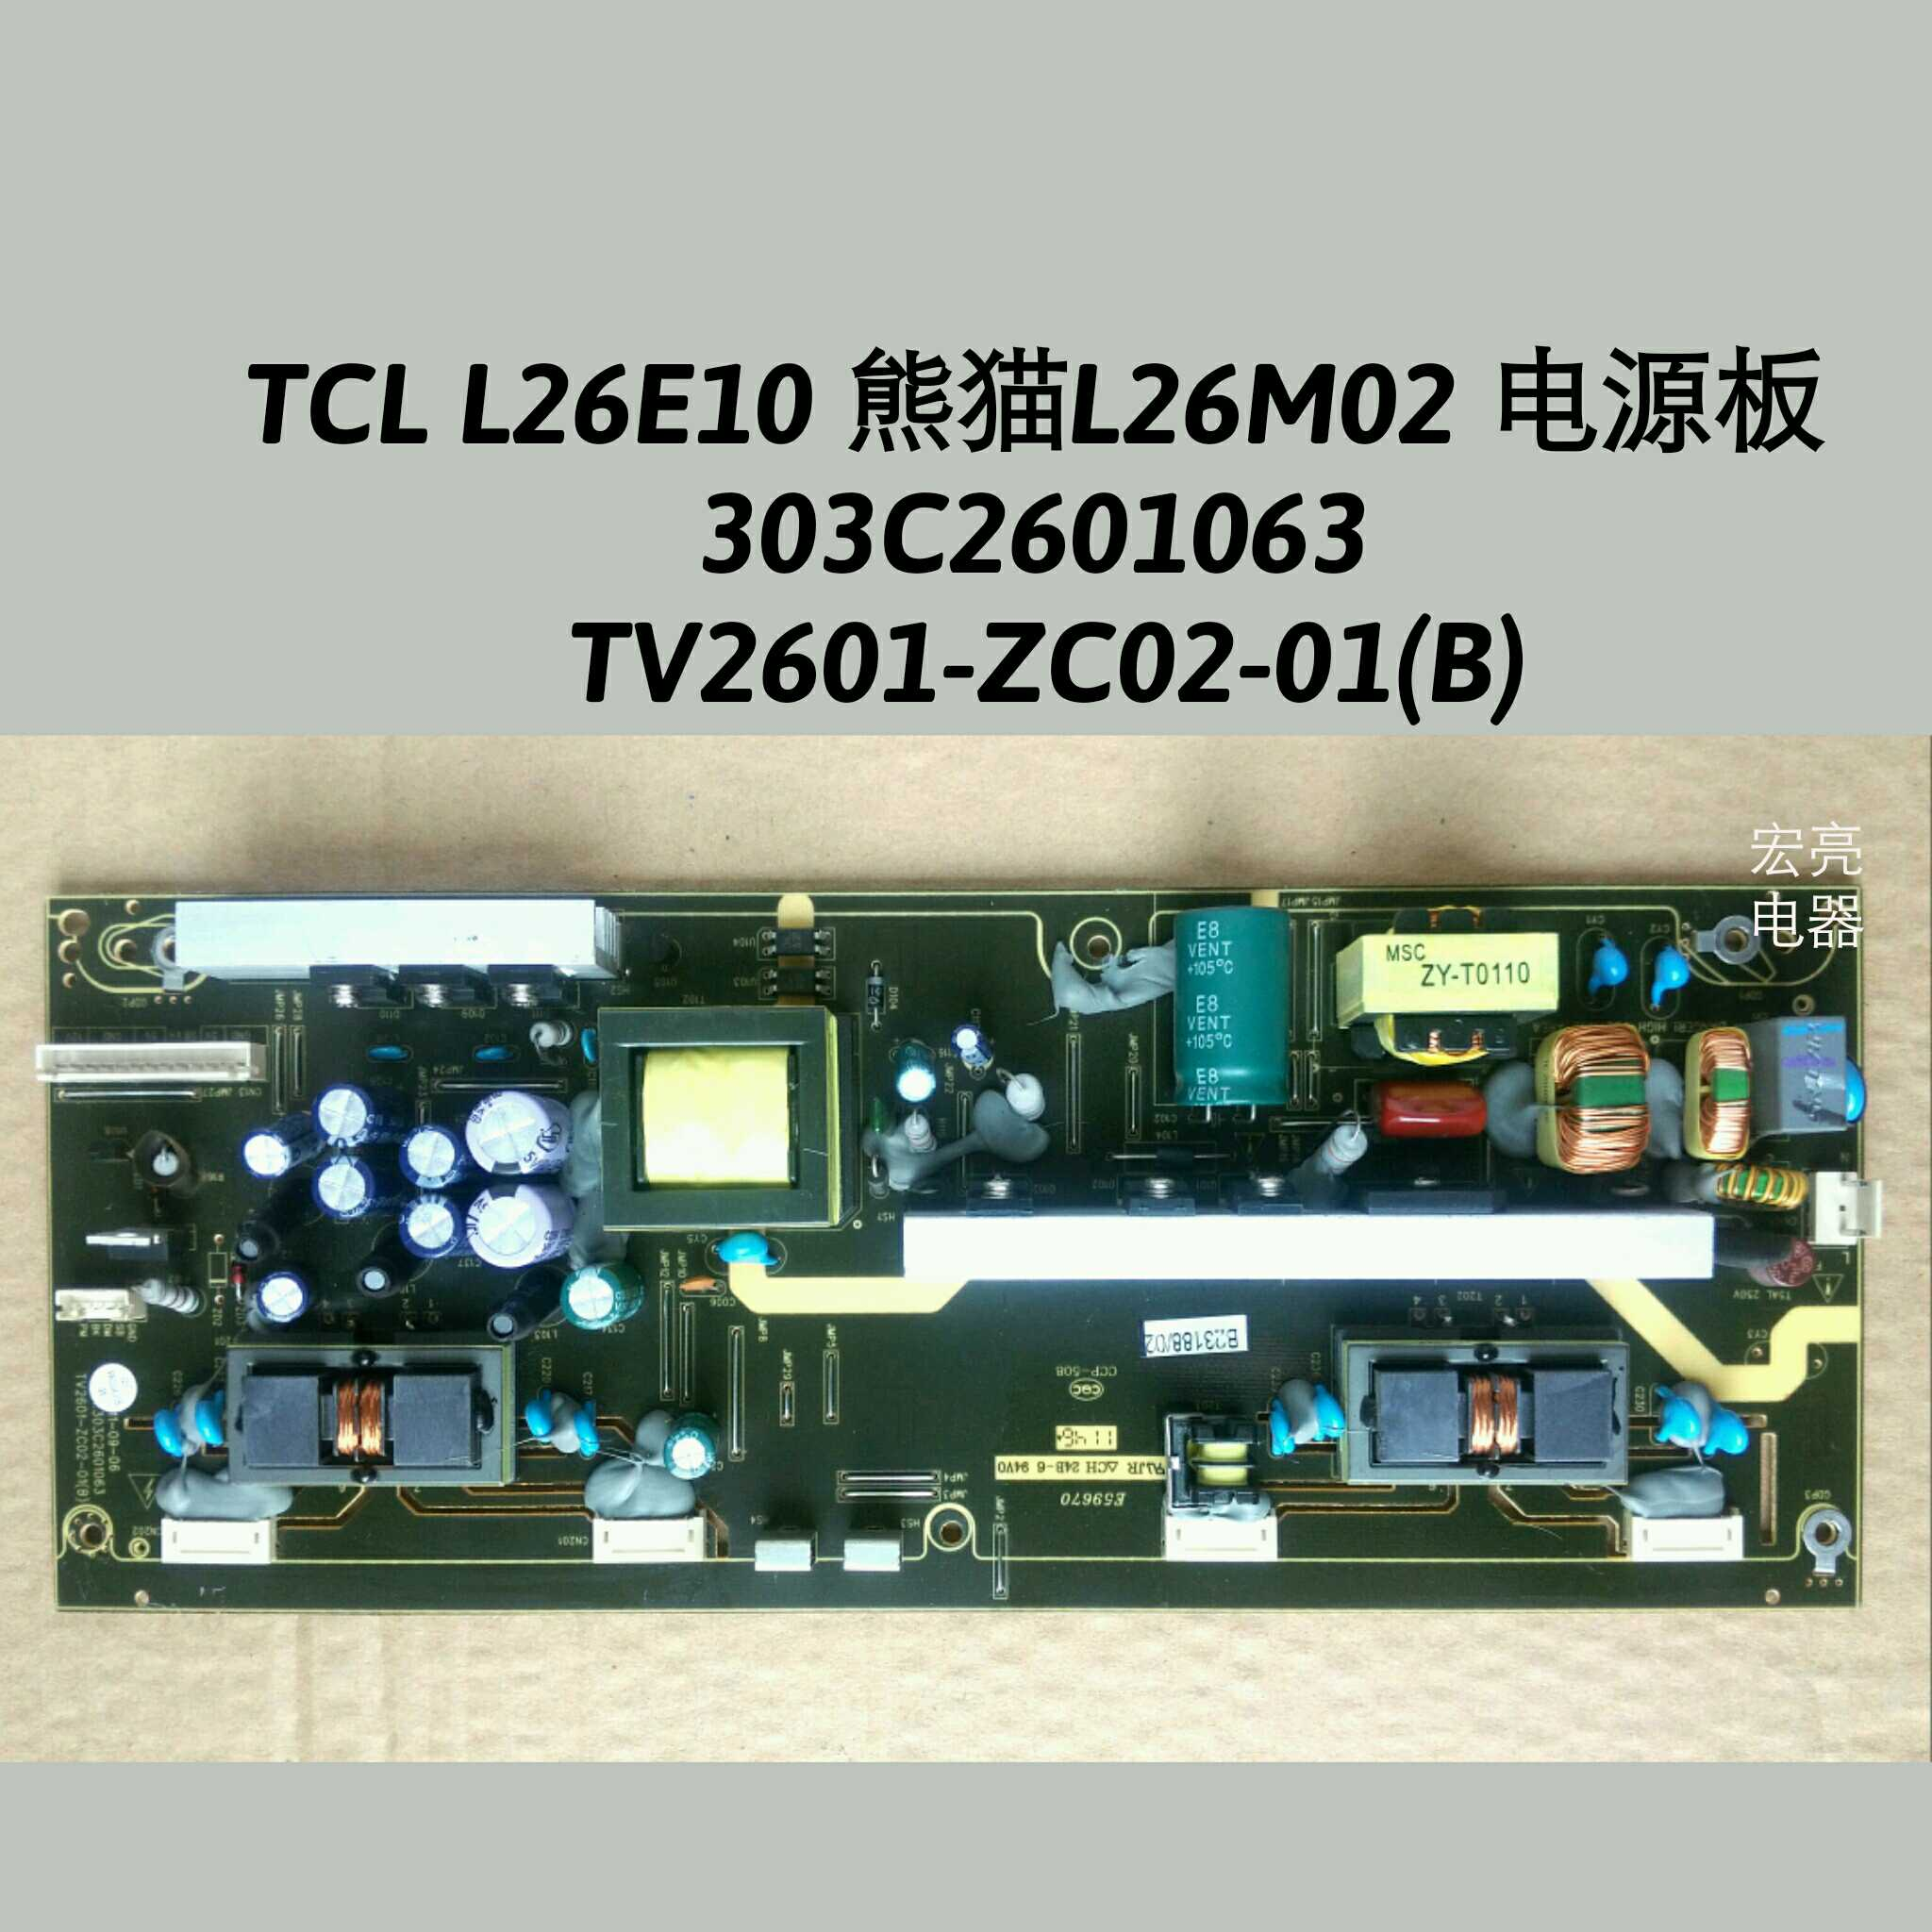 TCL L26E10 Panda L26M02 Power Board 303C2601063 TV2601-ZC02-01 (B)